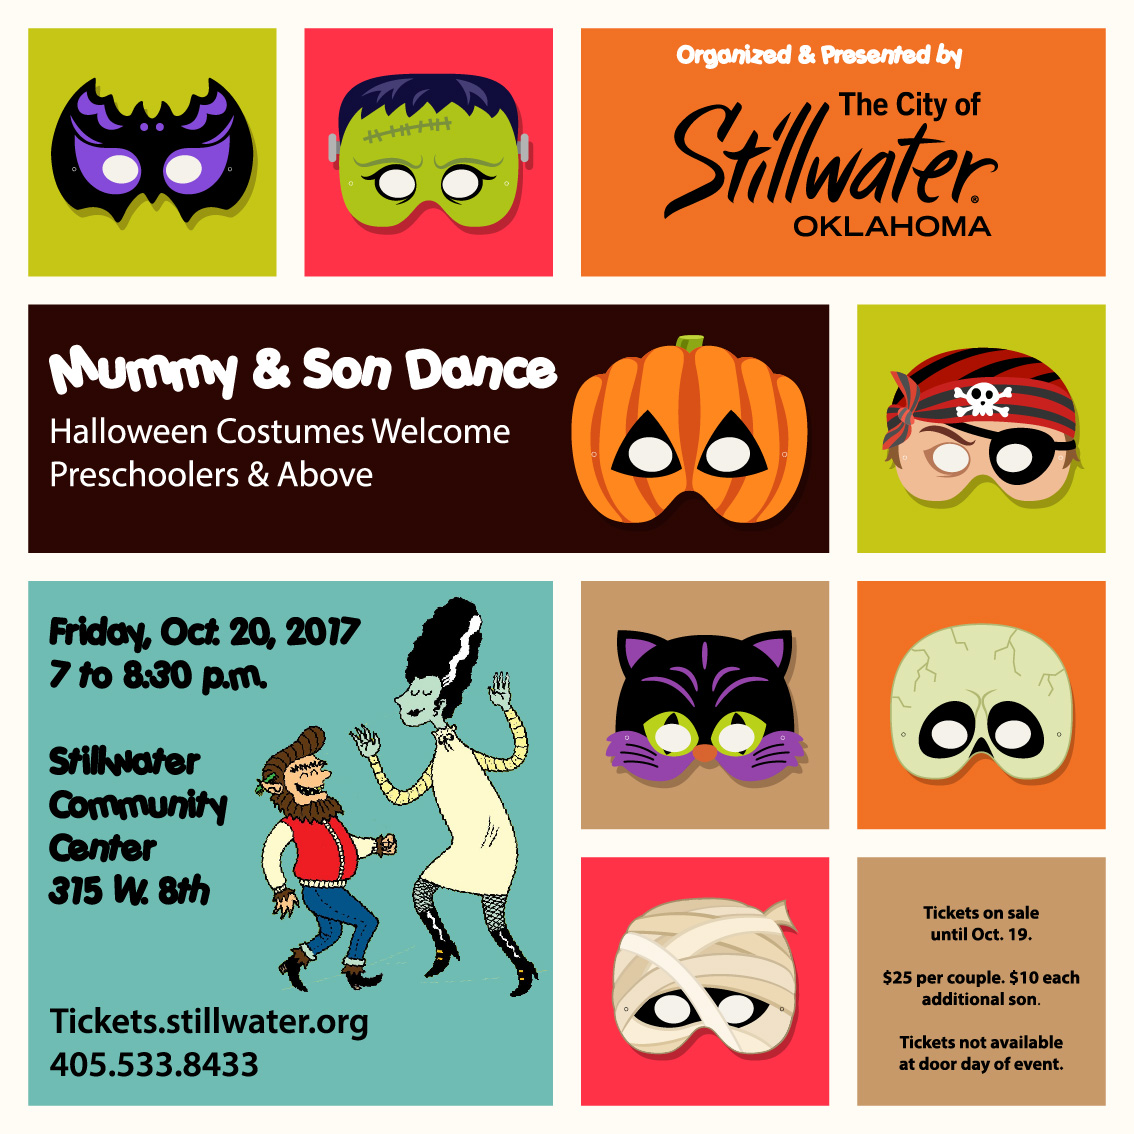 (STILLWATER, OKLAHOMA / Sept. 1, 2017 ) — Get your dancing shoes, masks and  costumes ready for the Mummy and Son Dance on Friday, Oct. 20 from 7 to  8:30 ...